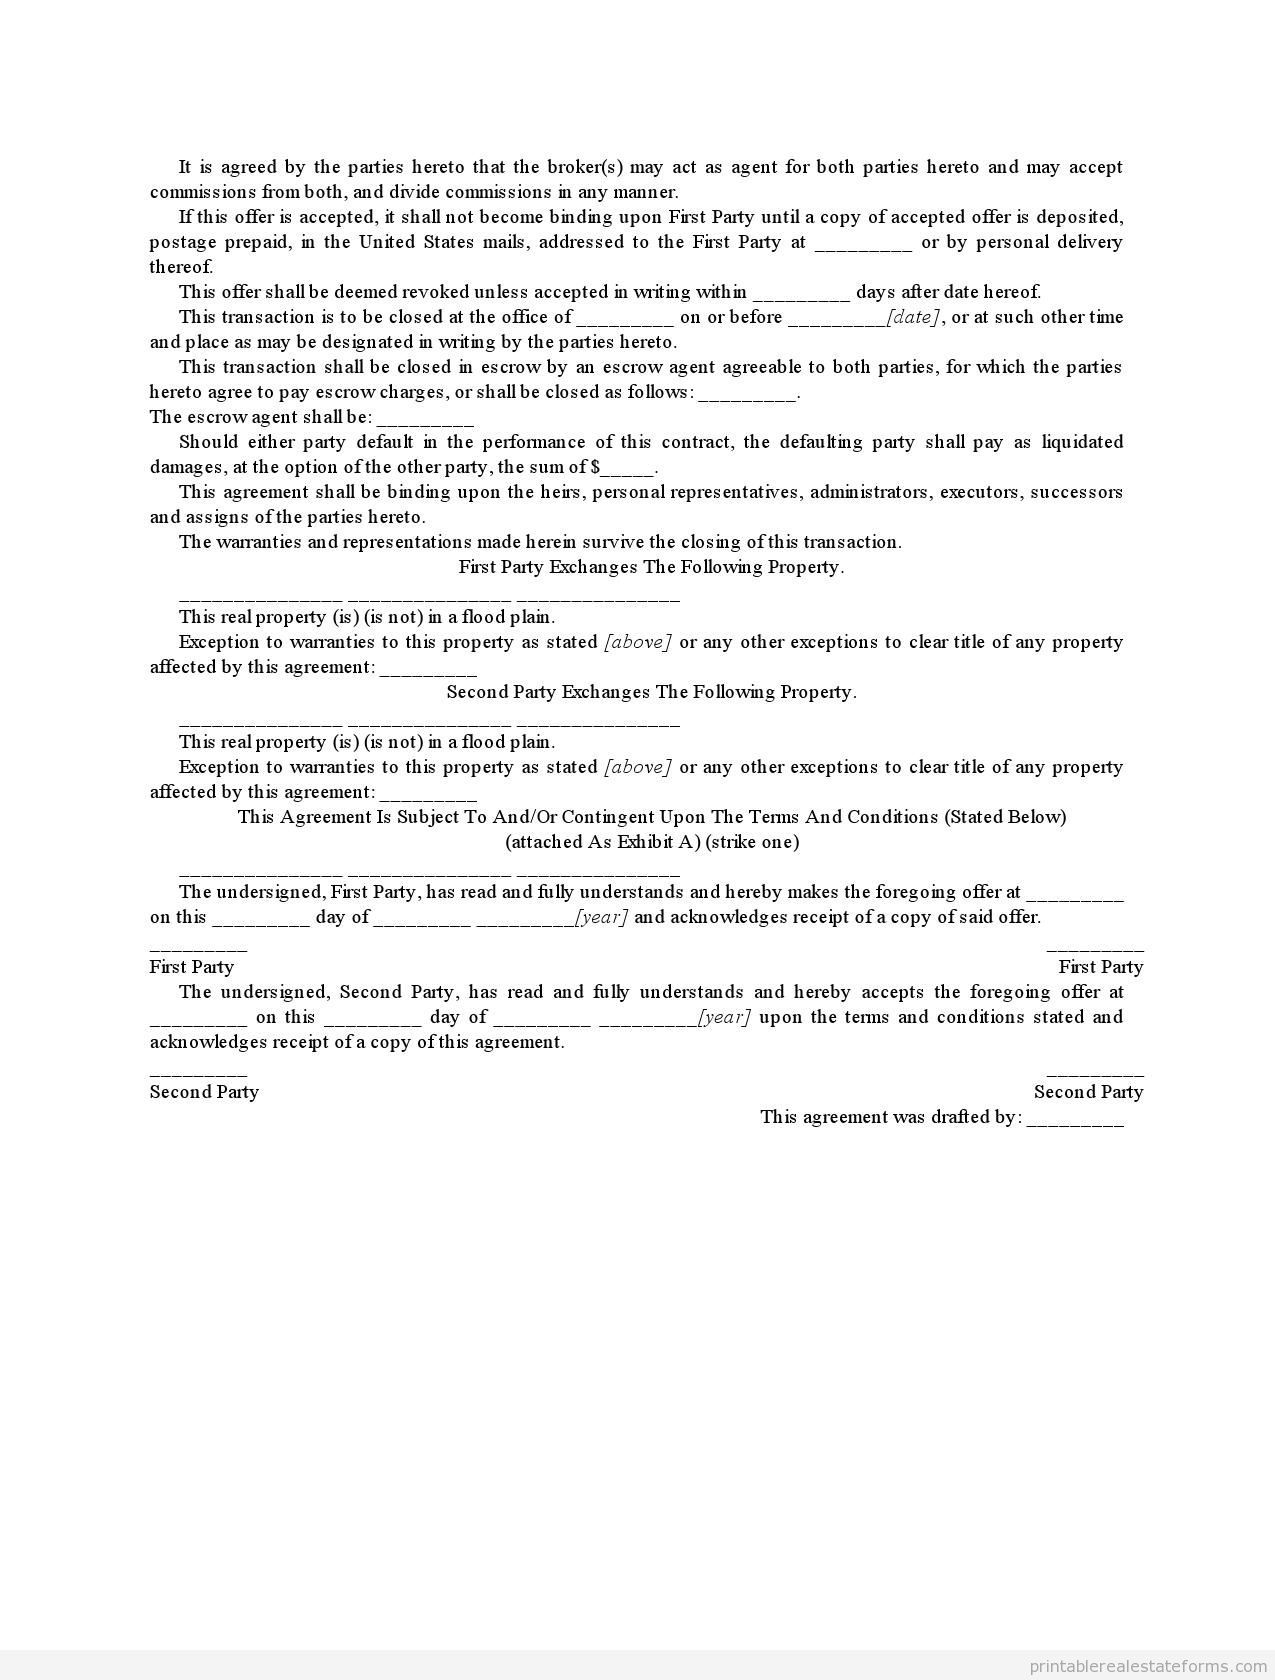 Sample Printable Wisconsin Form Offer To Exchange Property With